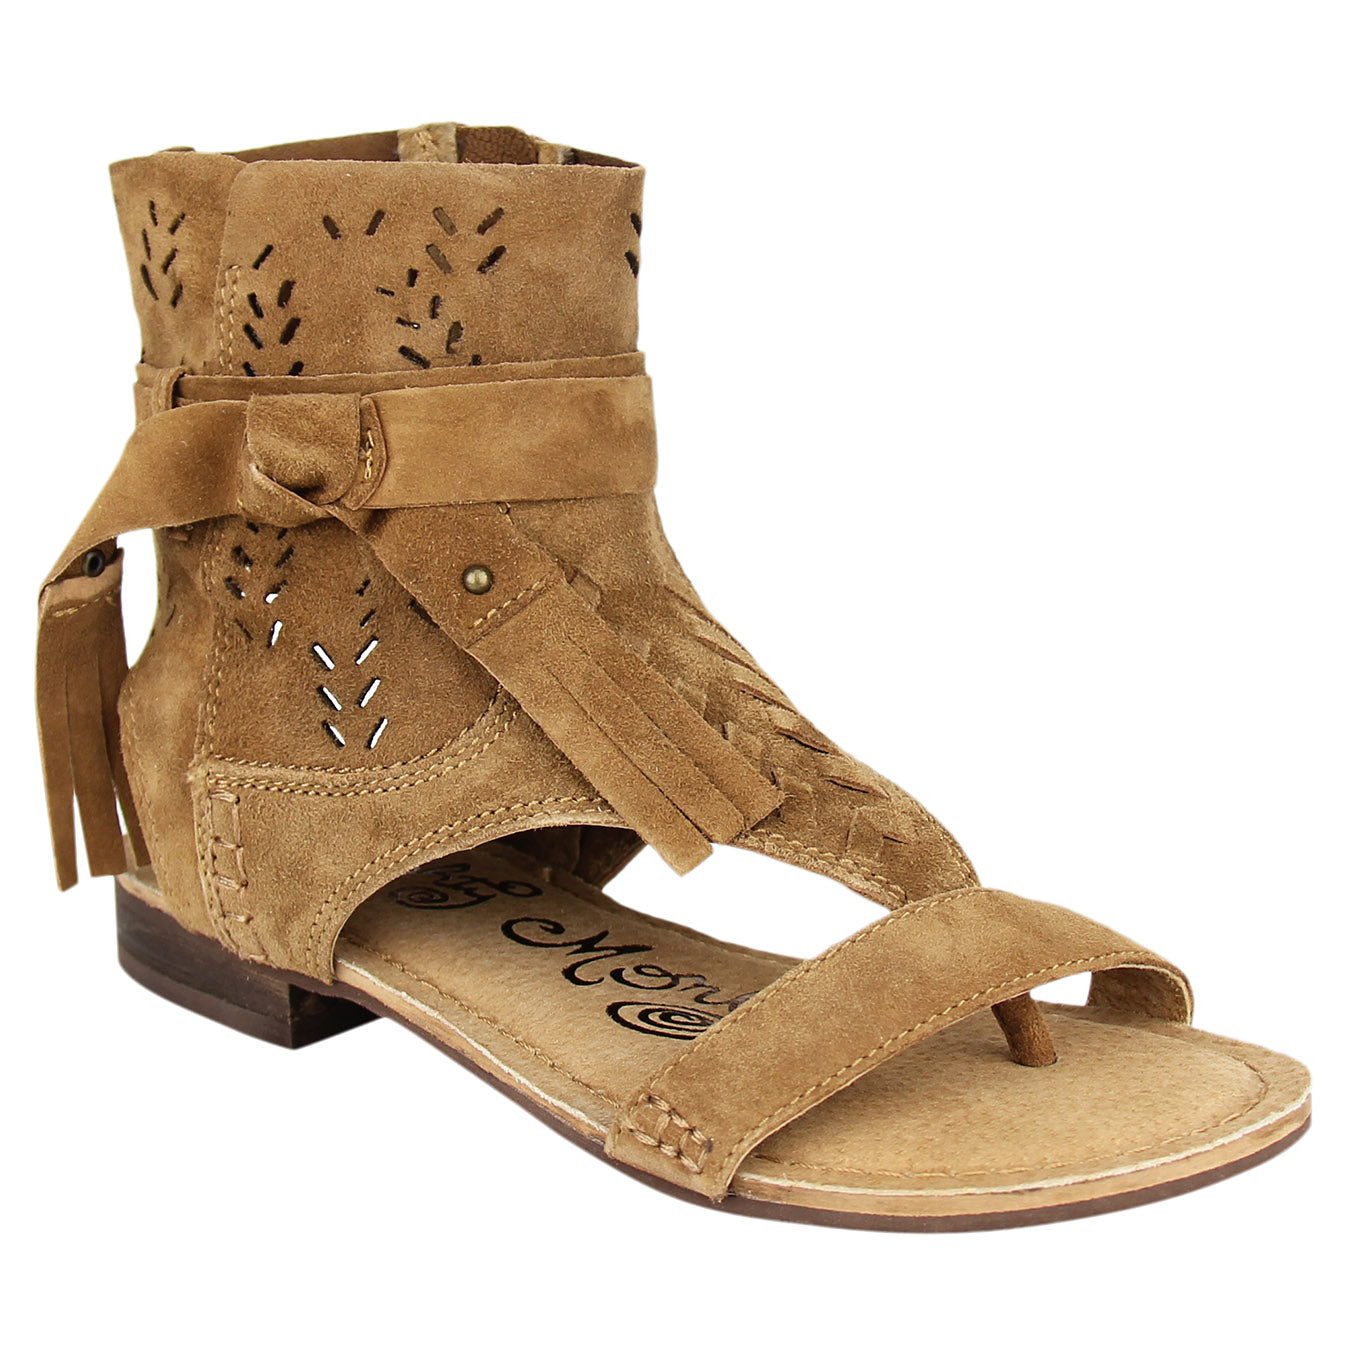 Naughty_Monkey_Sandal_taupe_leather_Cochise